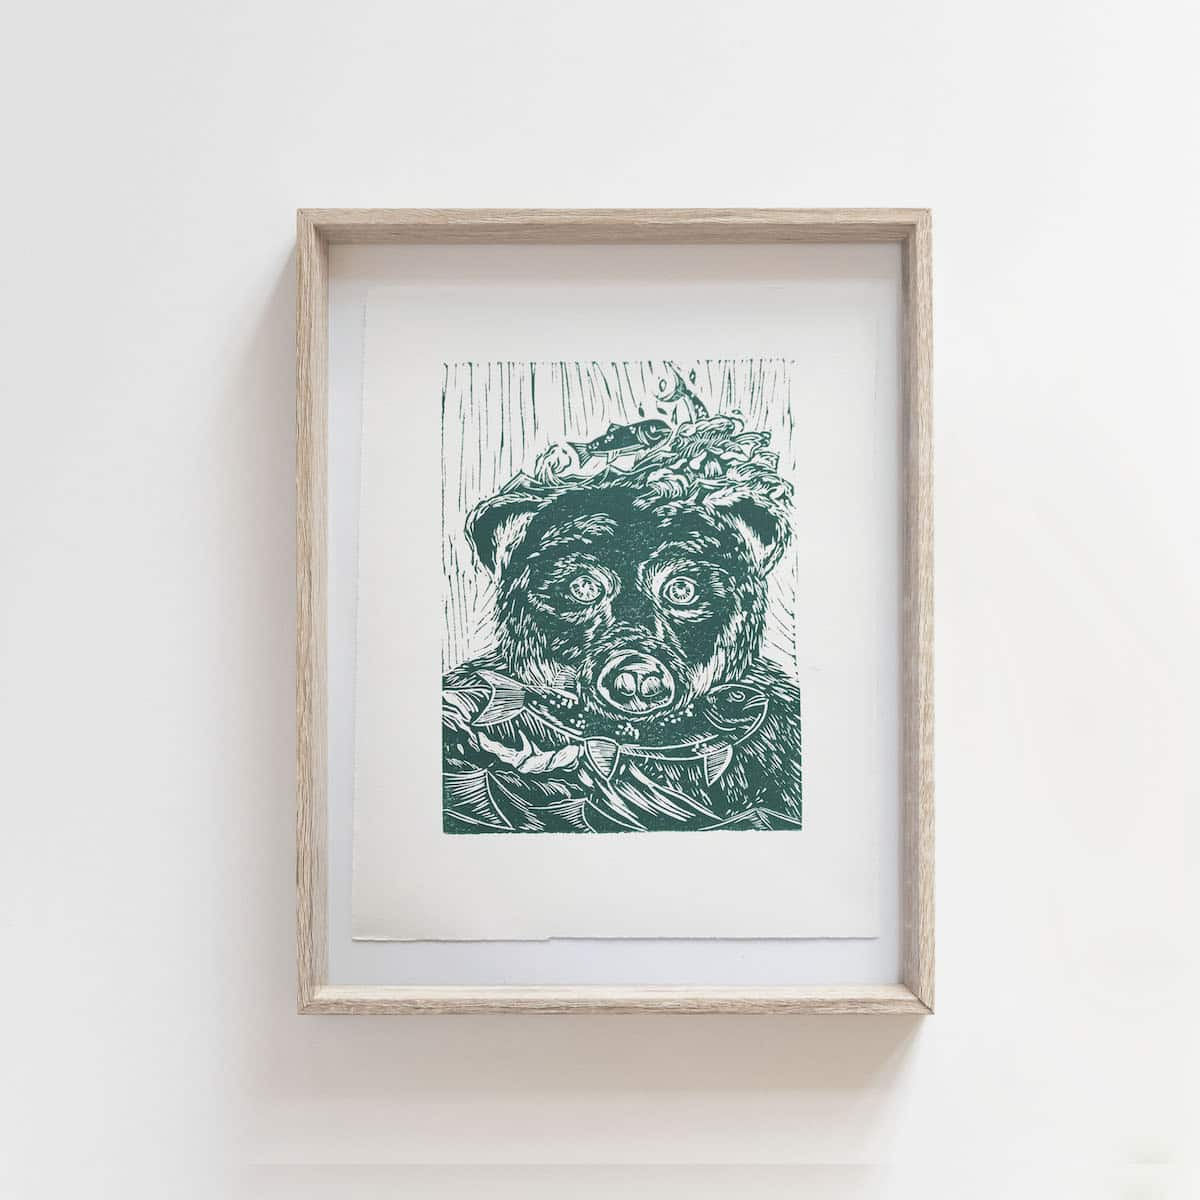 (Linoprint) What A Catch- By Jocelin Kan Meredith